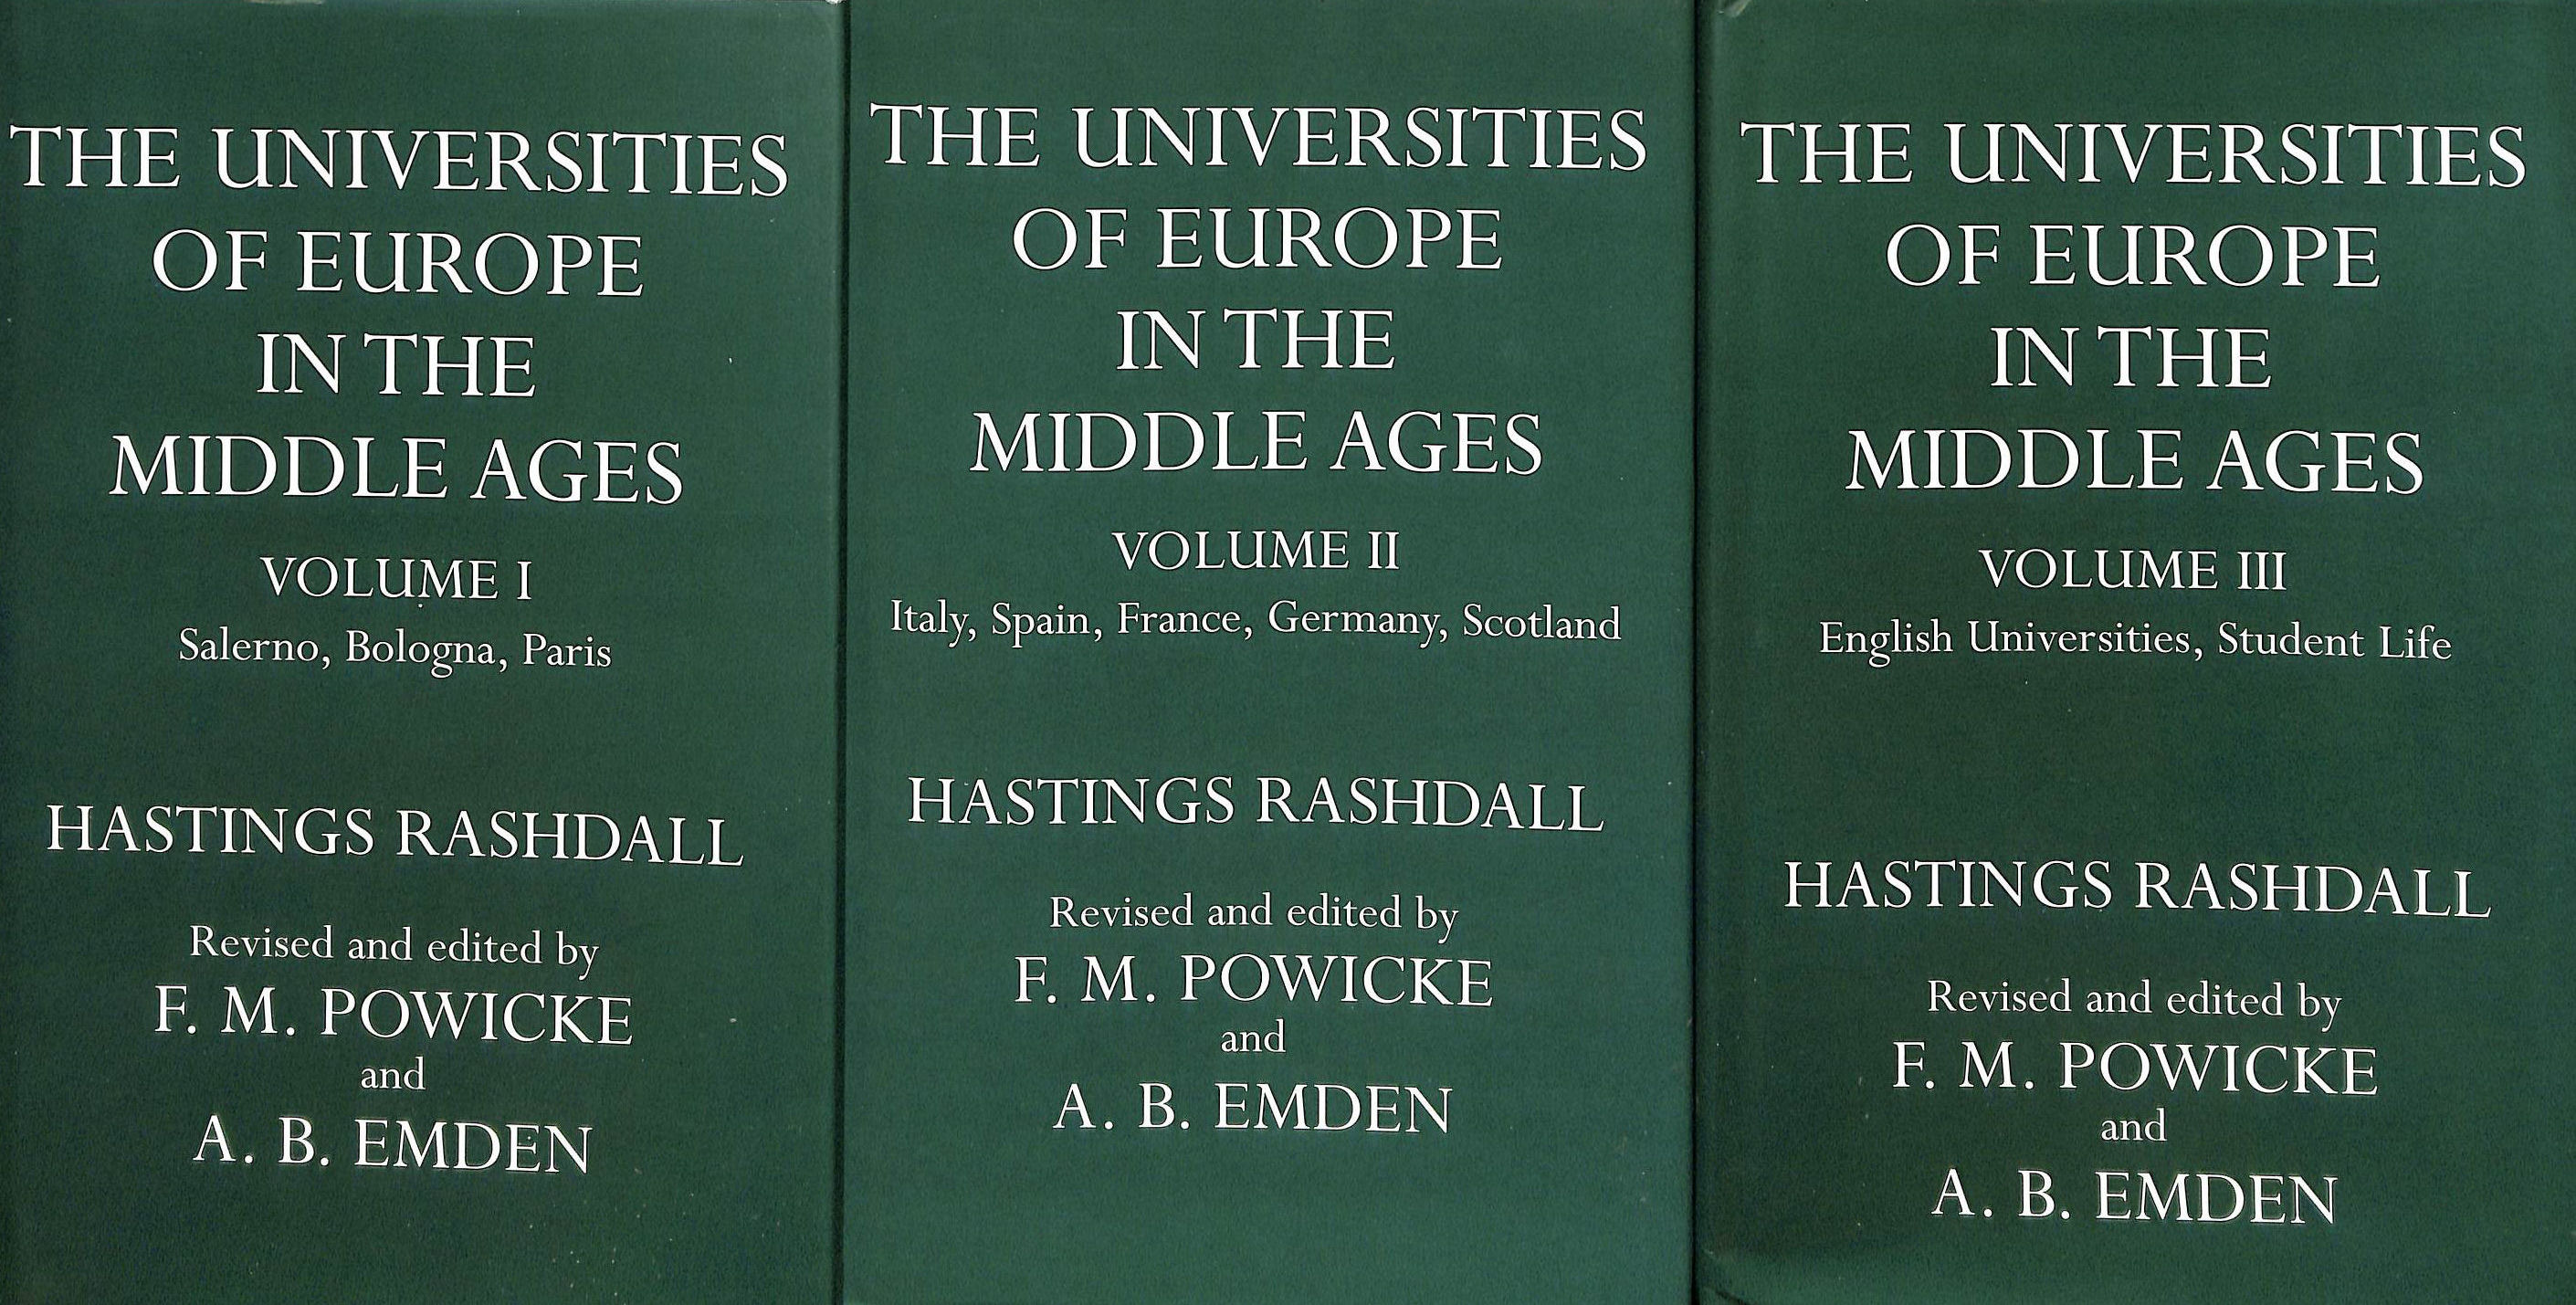 Image for The Universities of Europe in the Middle Ages - 3 Volumes